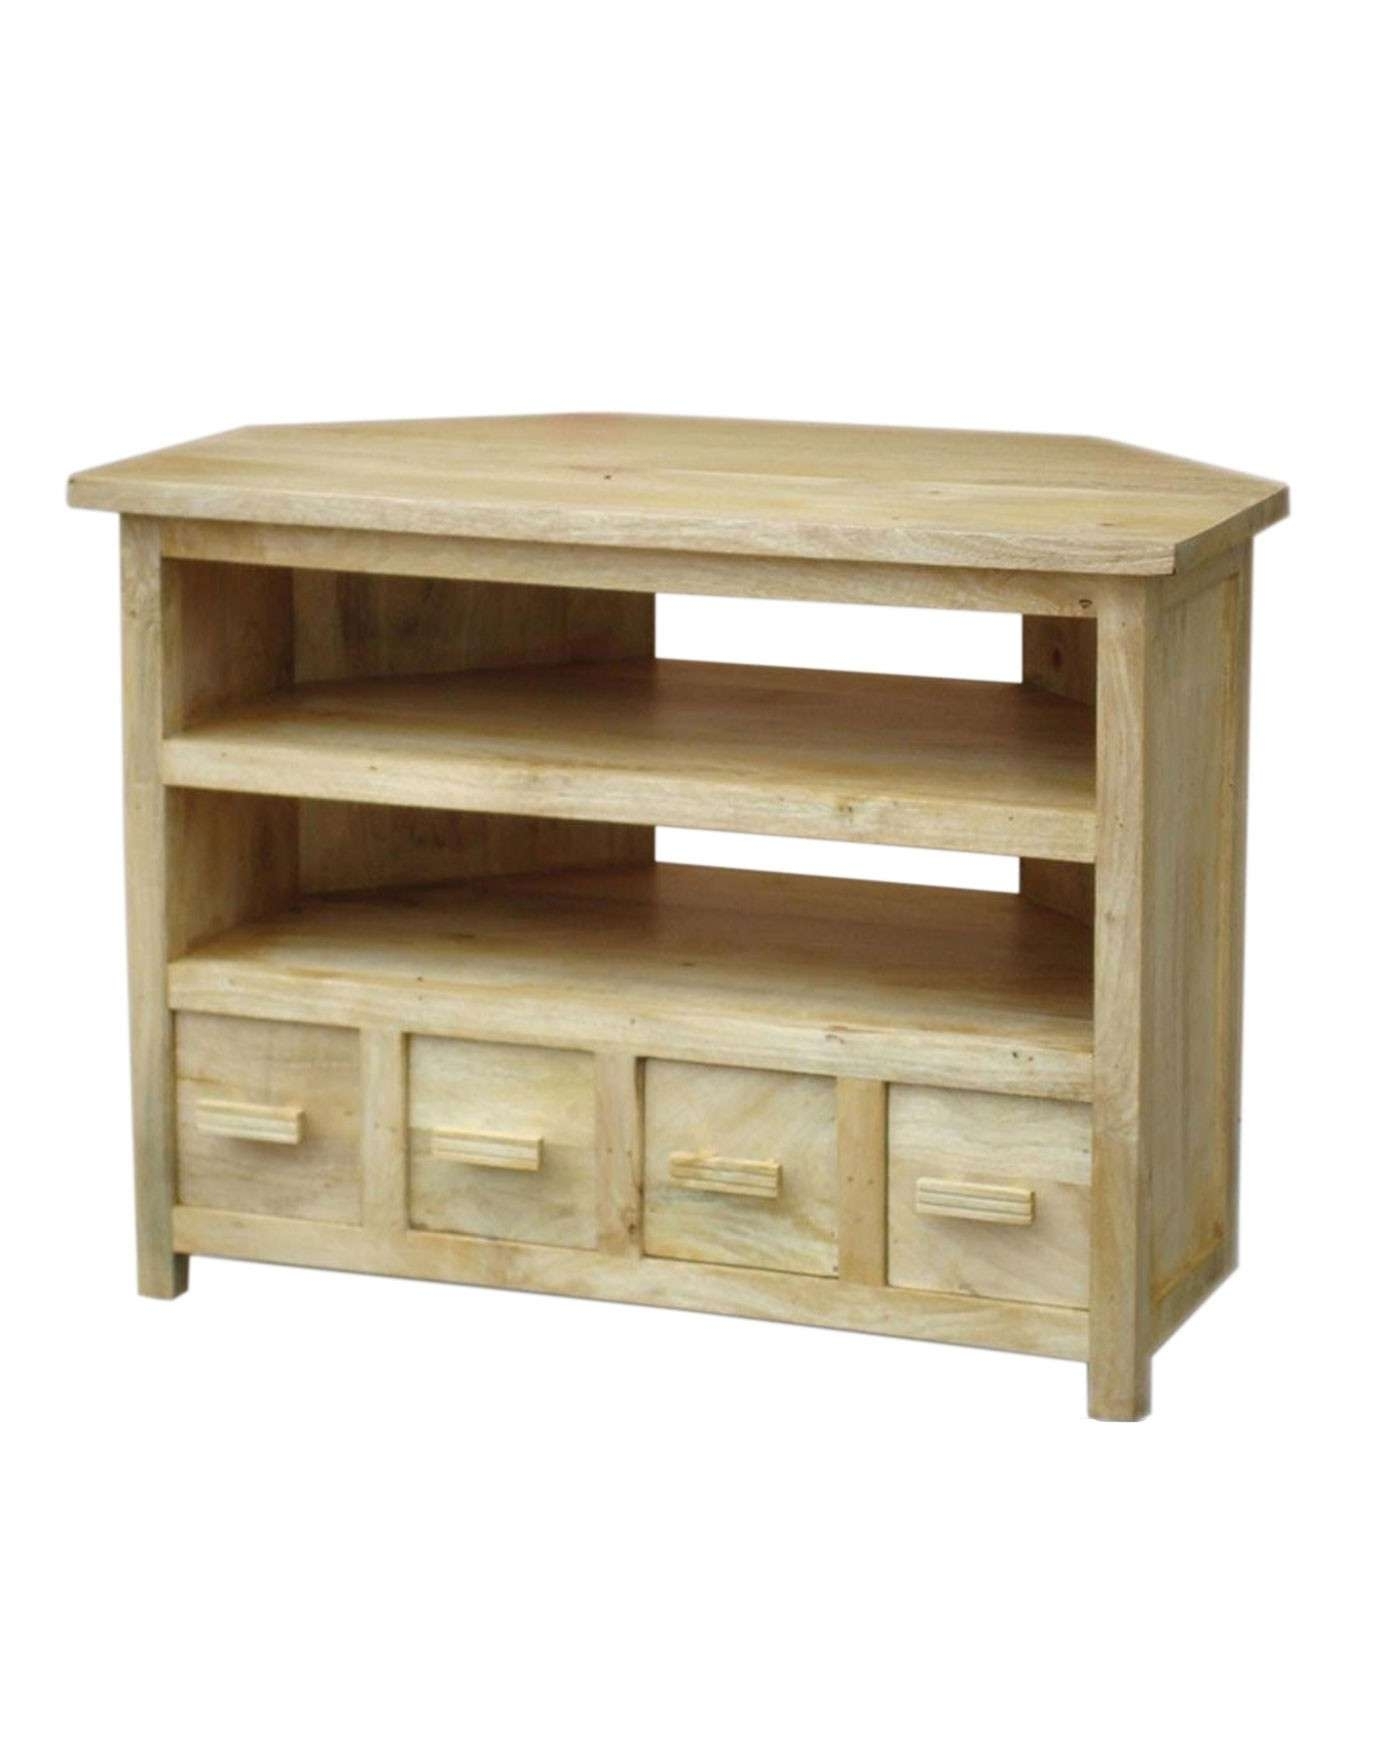 Mangat Tall Corner Tv Unit Oak Shade – Homescapes Throughout Wood Corner Tv Cabinets (View 11 of 20)